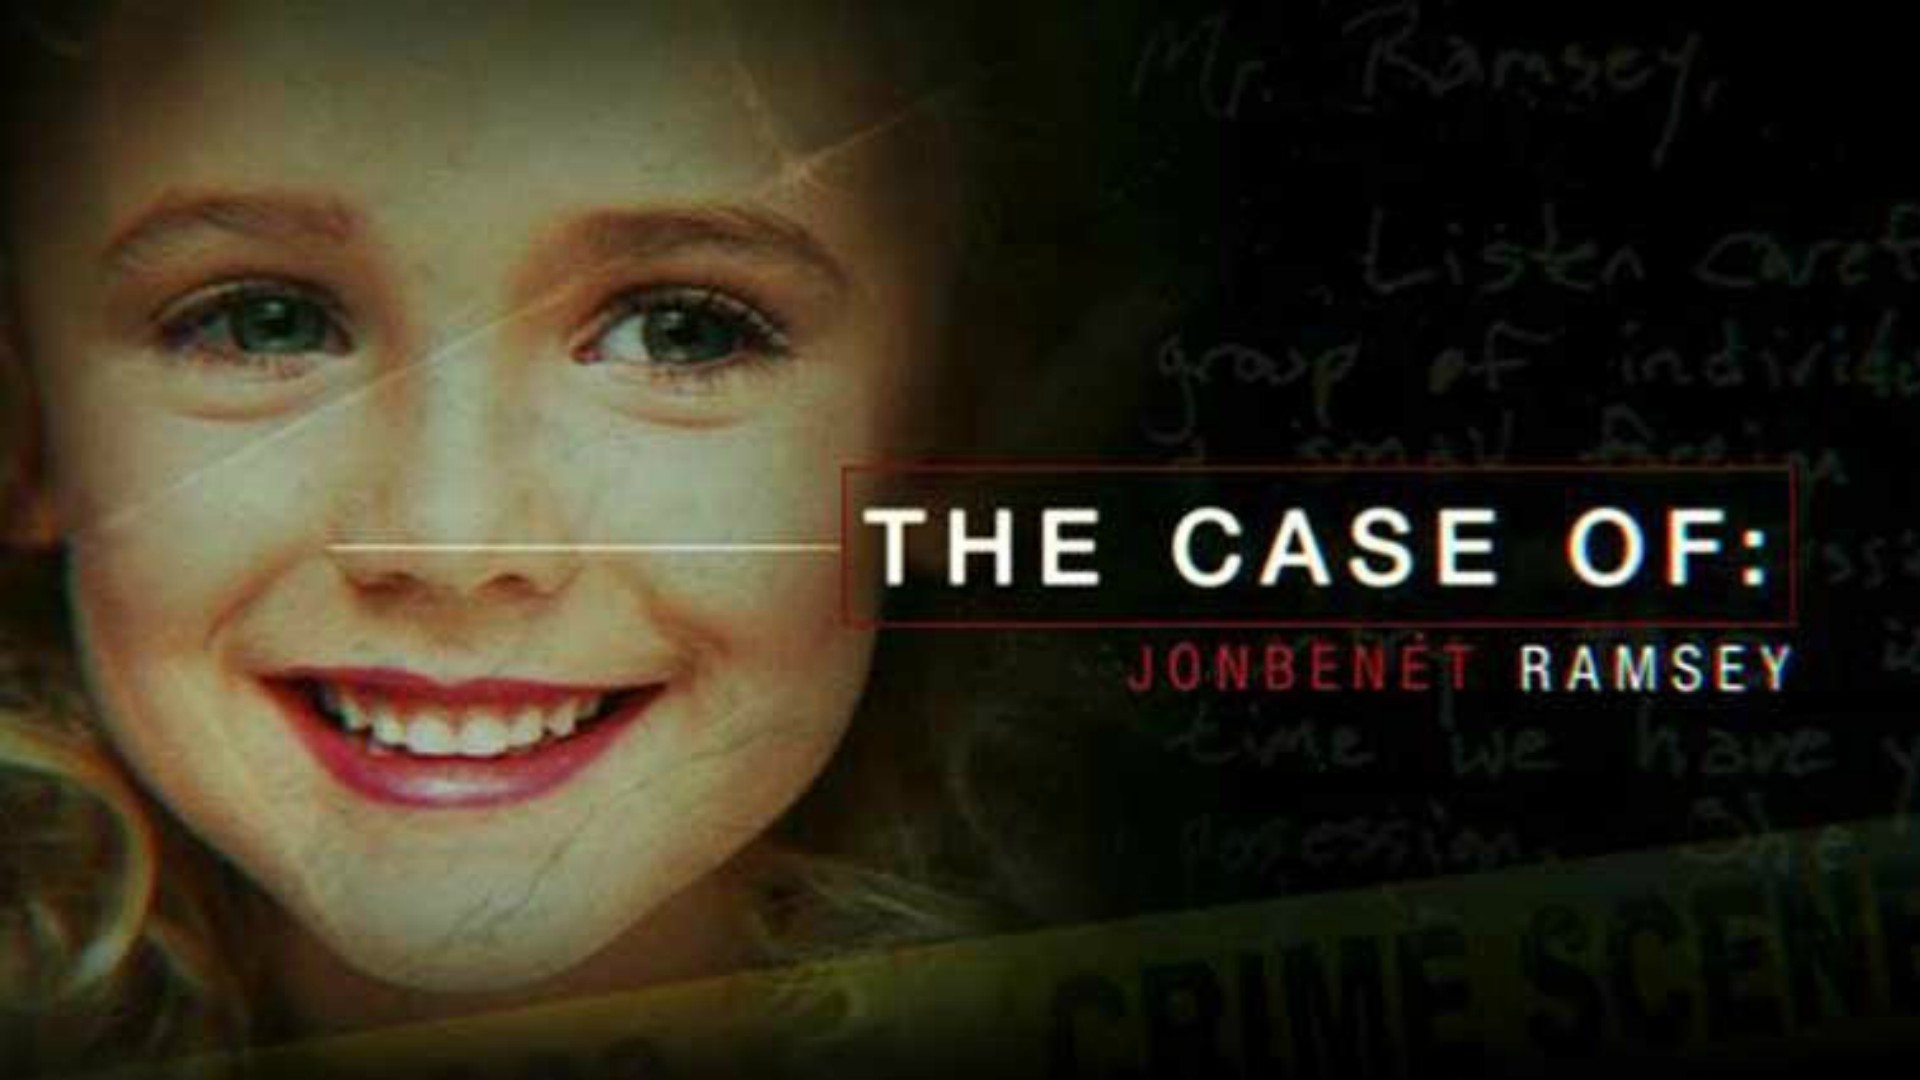 cbs-just-might-solve-the-jonbenet-ramsey-case-once-and-for-all